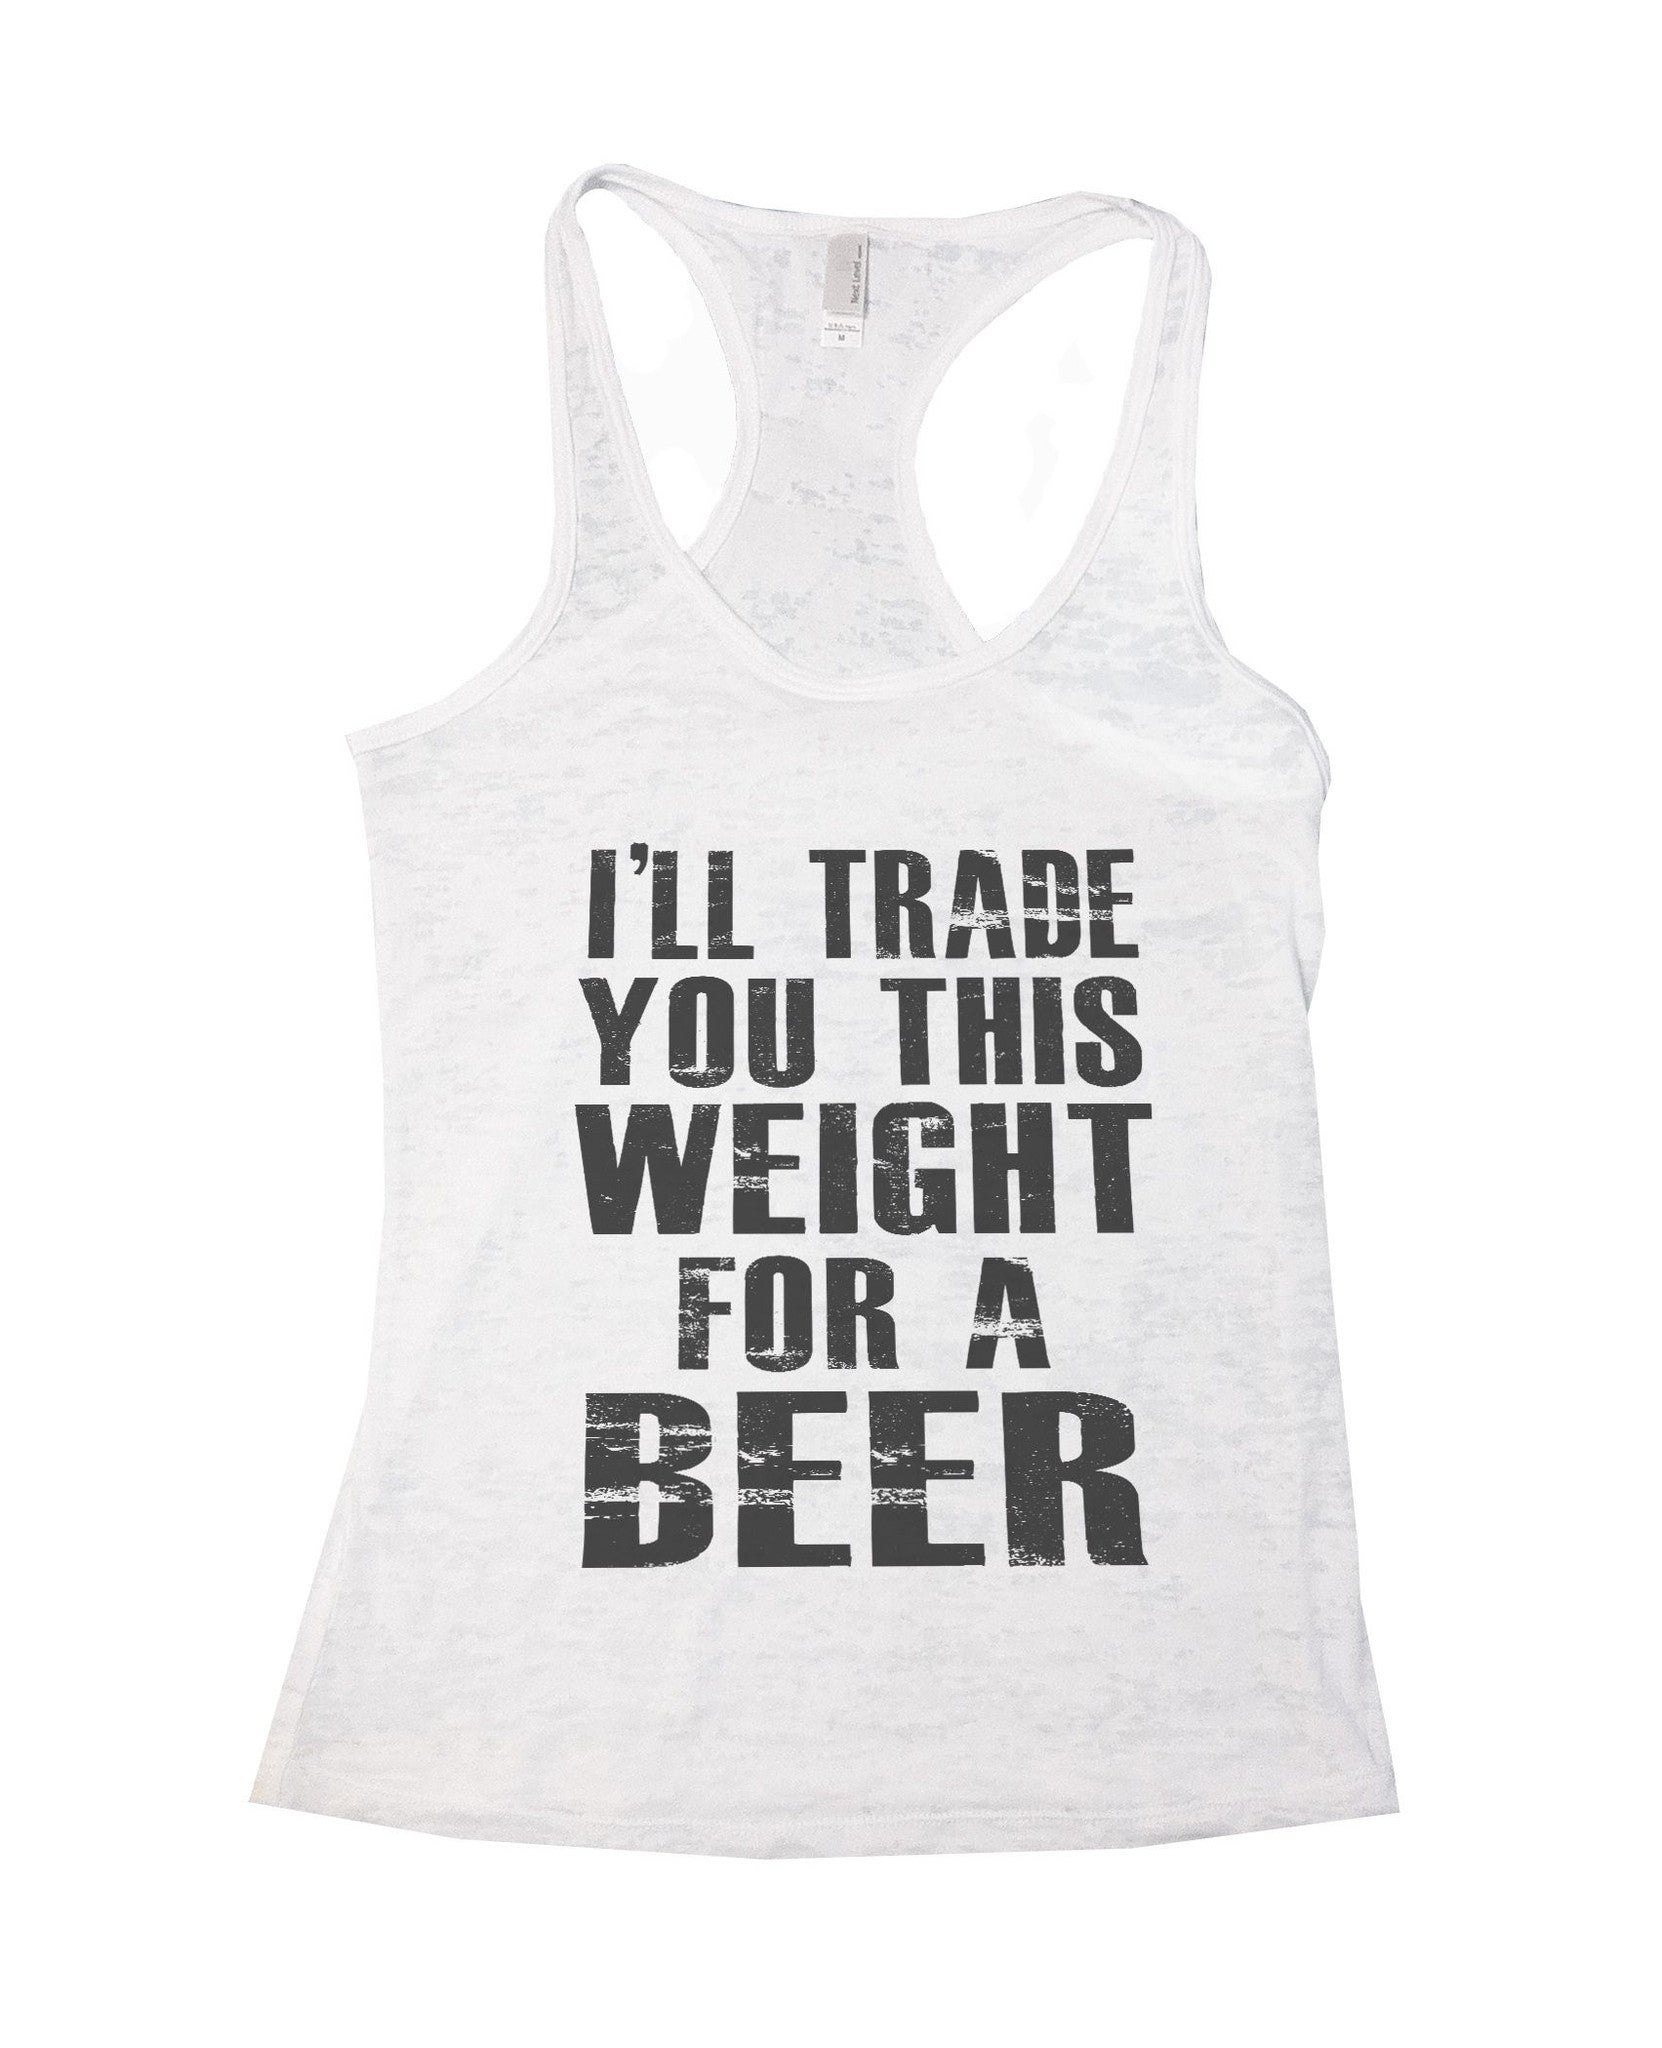 I'll Trade You This Weight For A Beer Burnout Tank Top By BurnoutTankTops.com - 628 - Funny Shirts Tank Tops Burnouts and Triblends  - 6